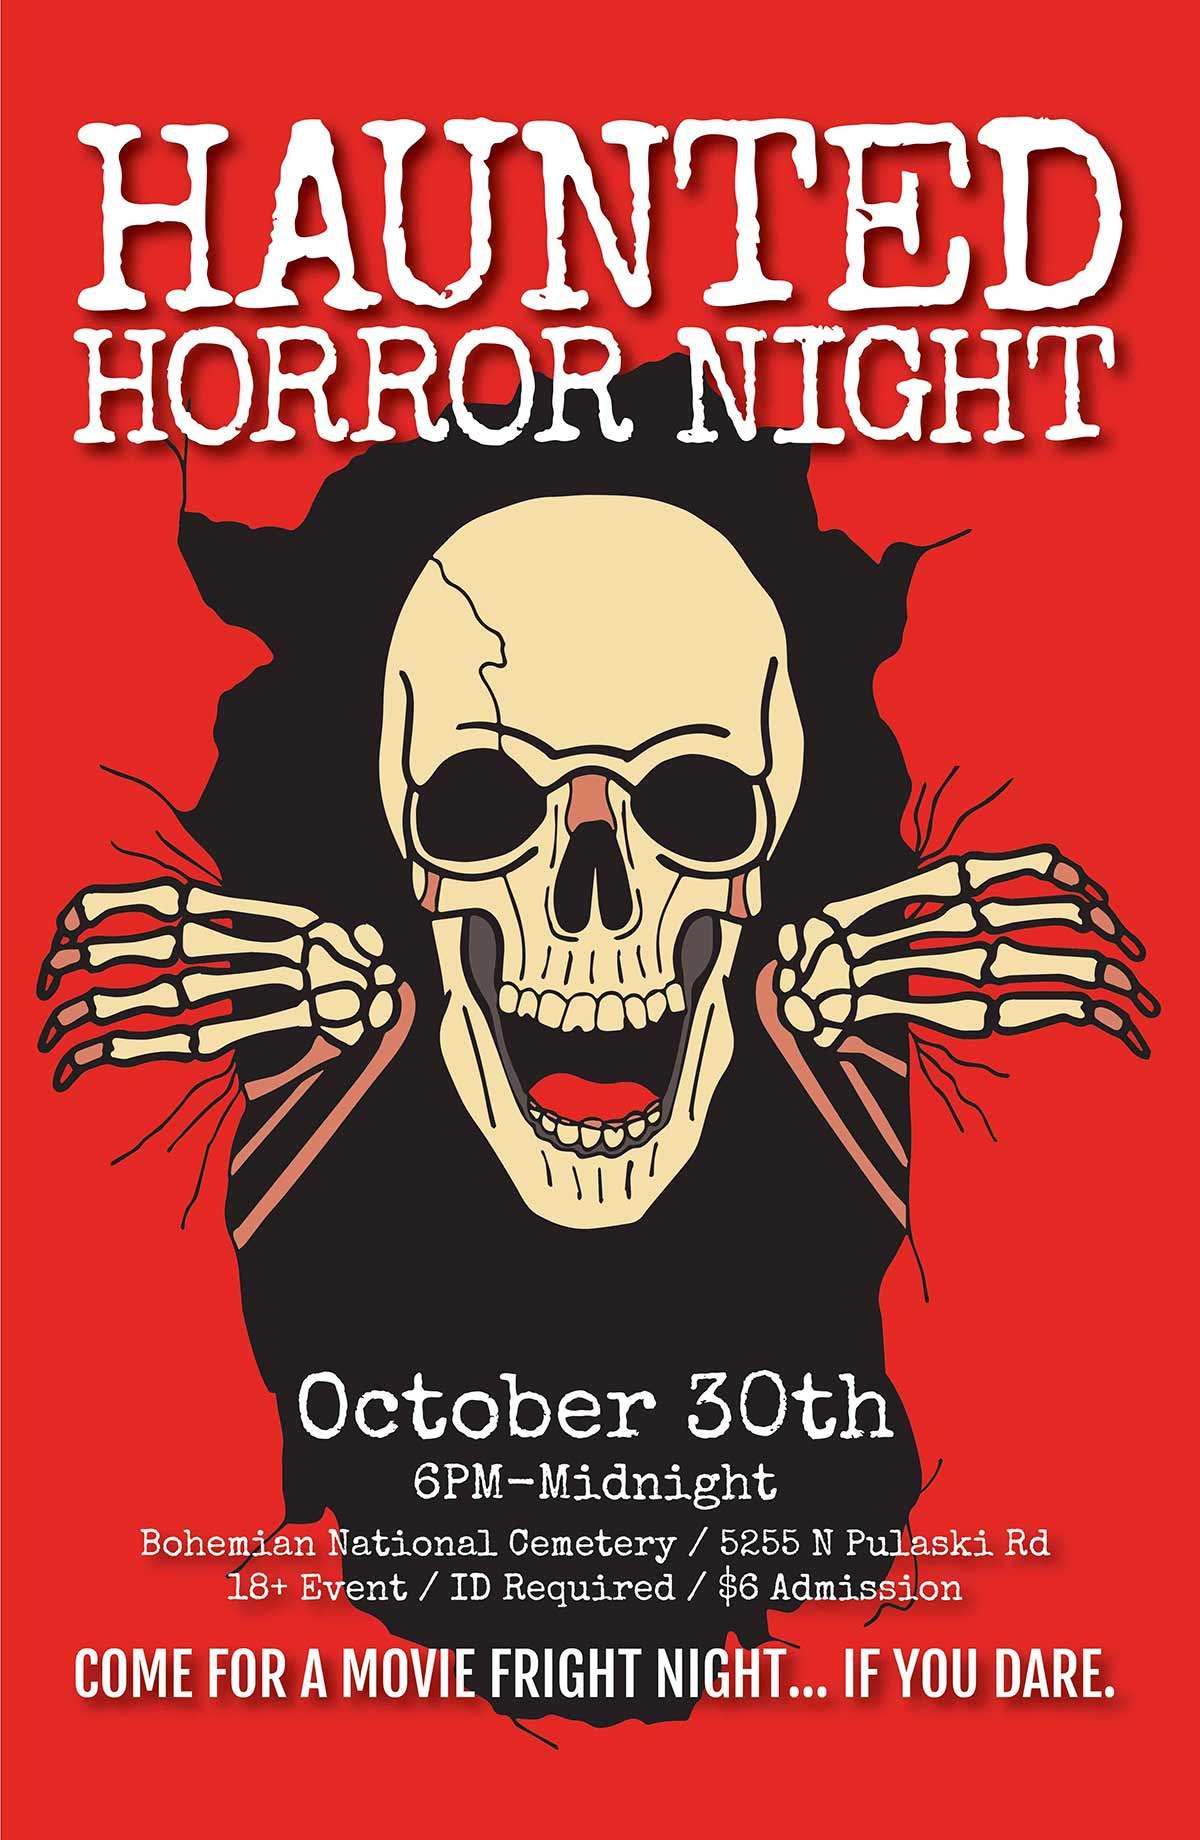 A red themed version of the Haunted Horror Night poster, giving a more gorey and graphic look to the illustration.